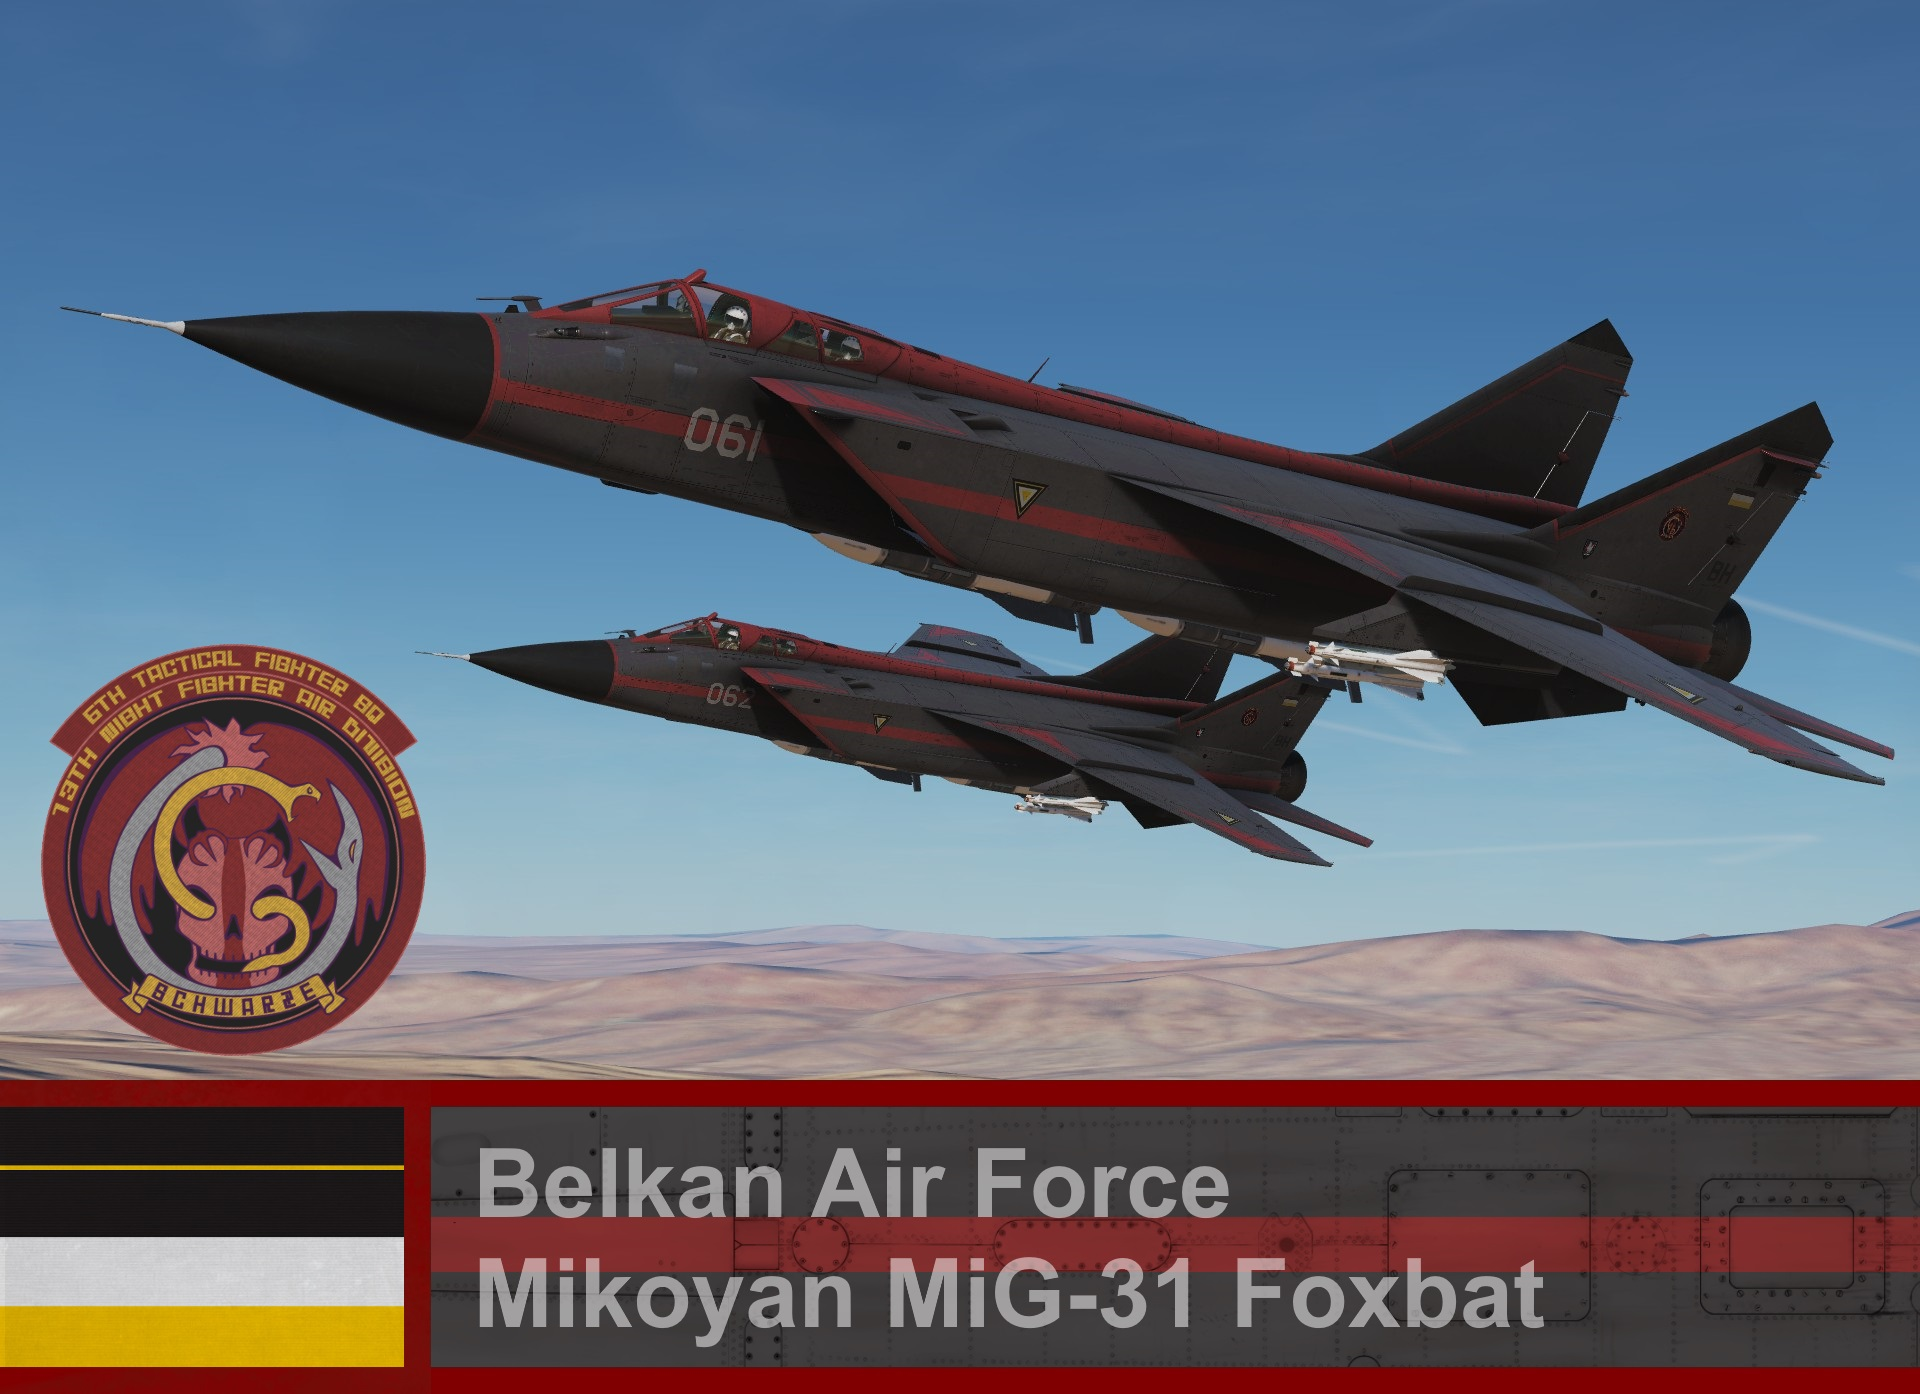 Belkan Air Force, Mikoyan MiG-31 Foxbat, Schwarze Team - Ace Combat Zero (6th TFS)